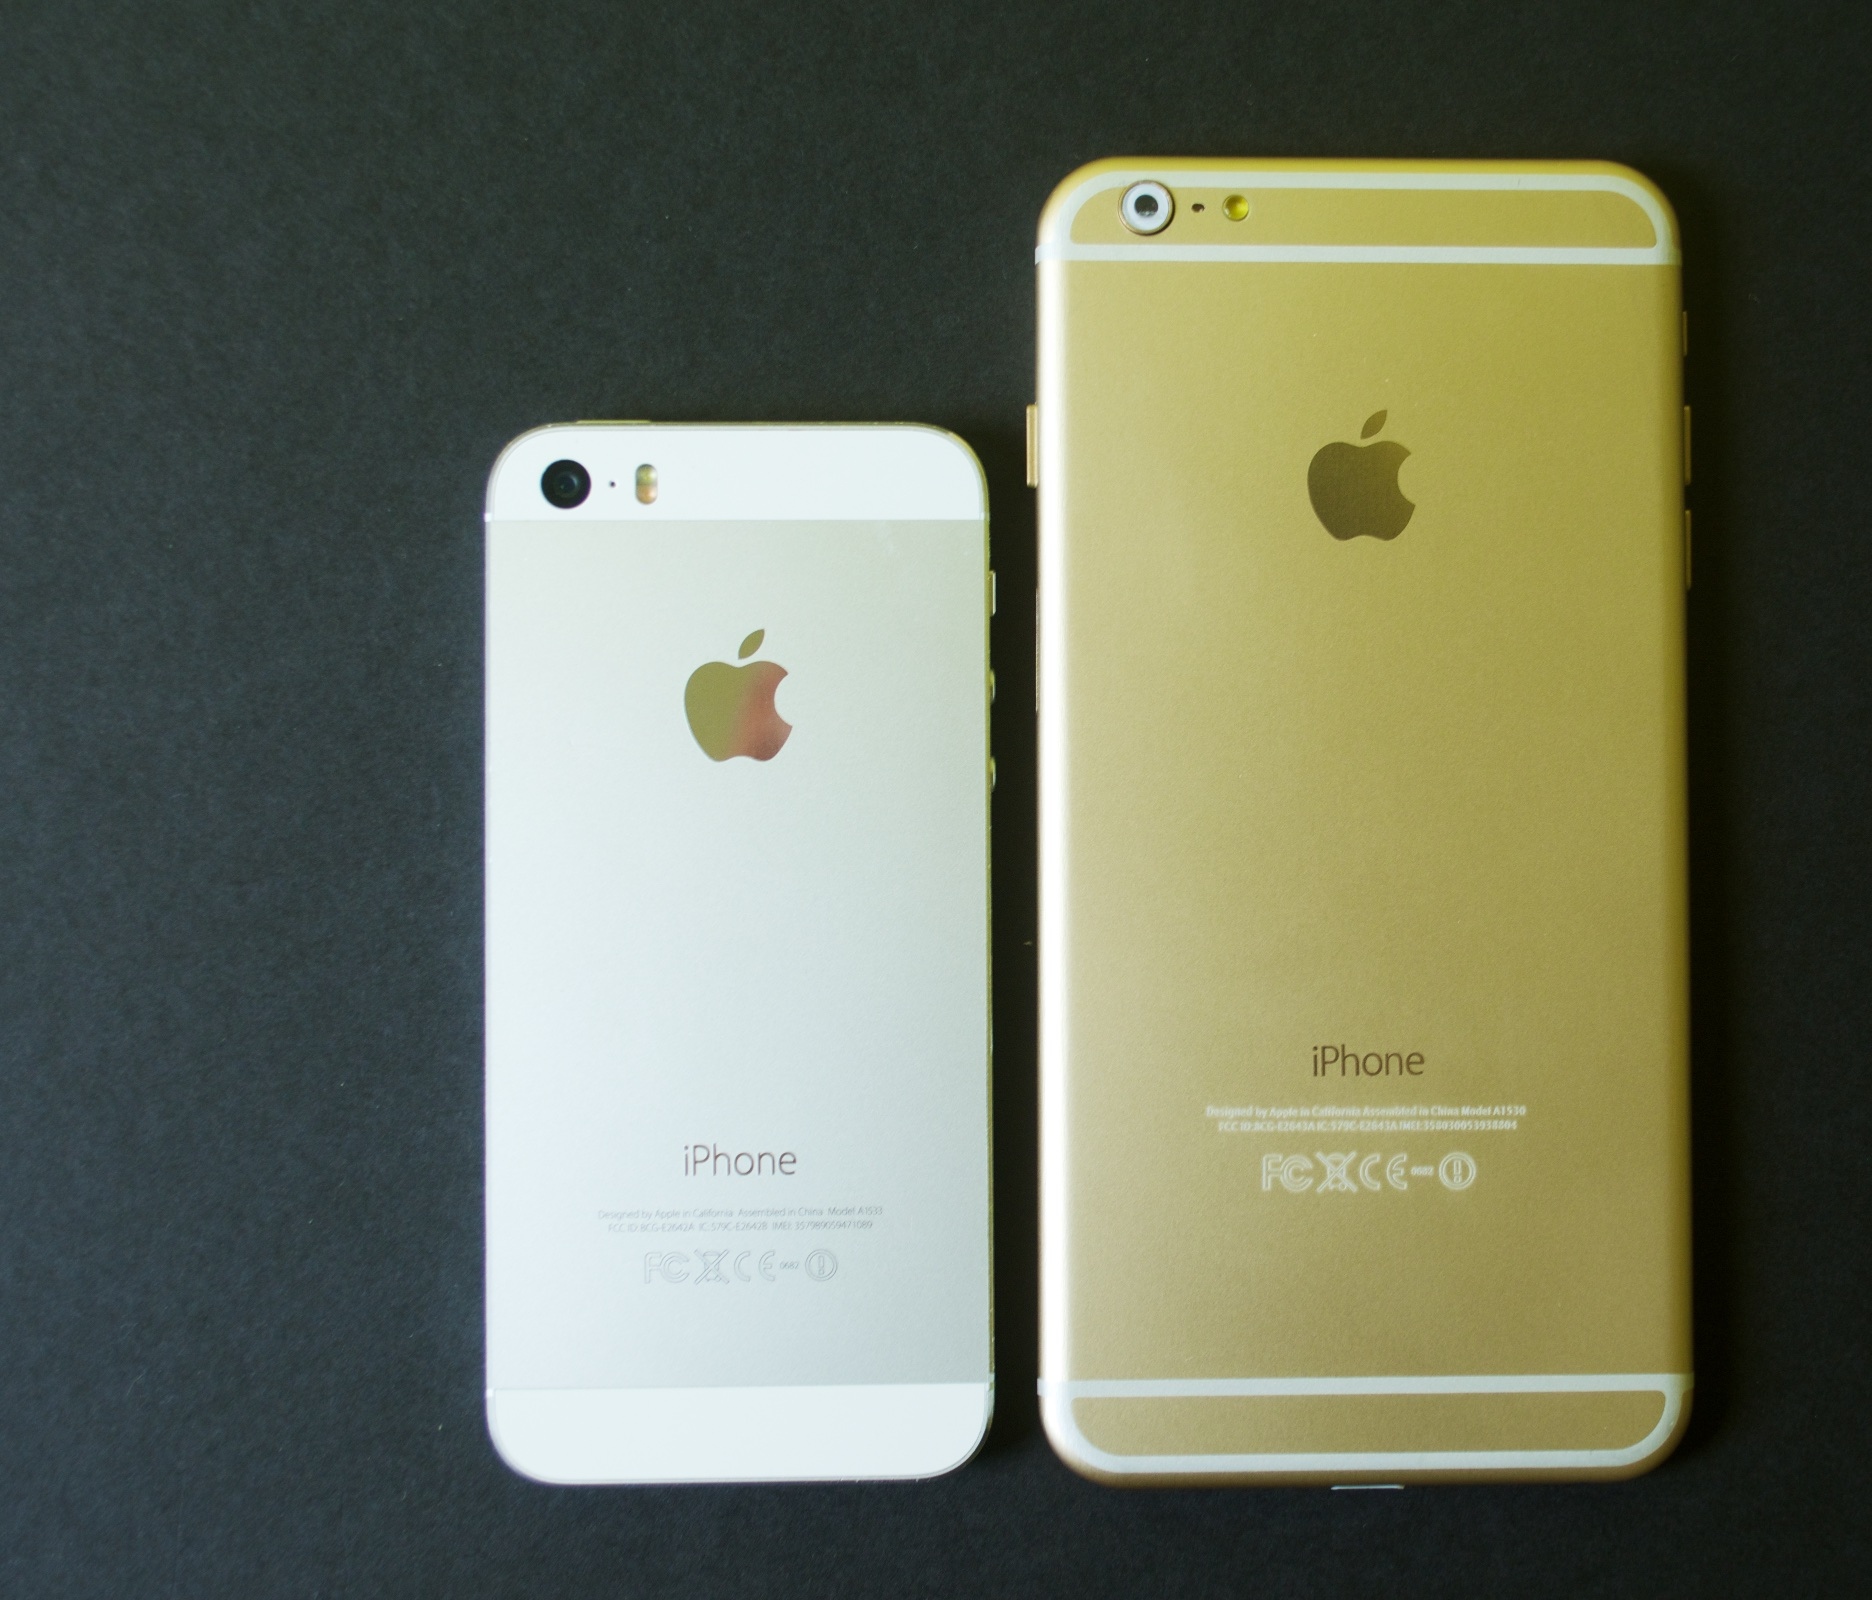 iPhone 6 vs iPhone 5s: 5 Things to Know About the Big iPhoneIphone 5 6 7